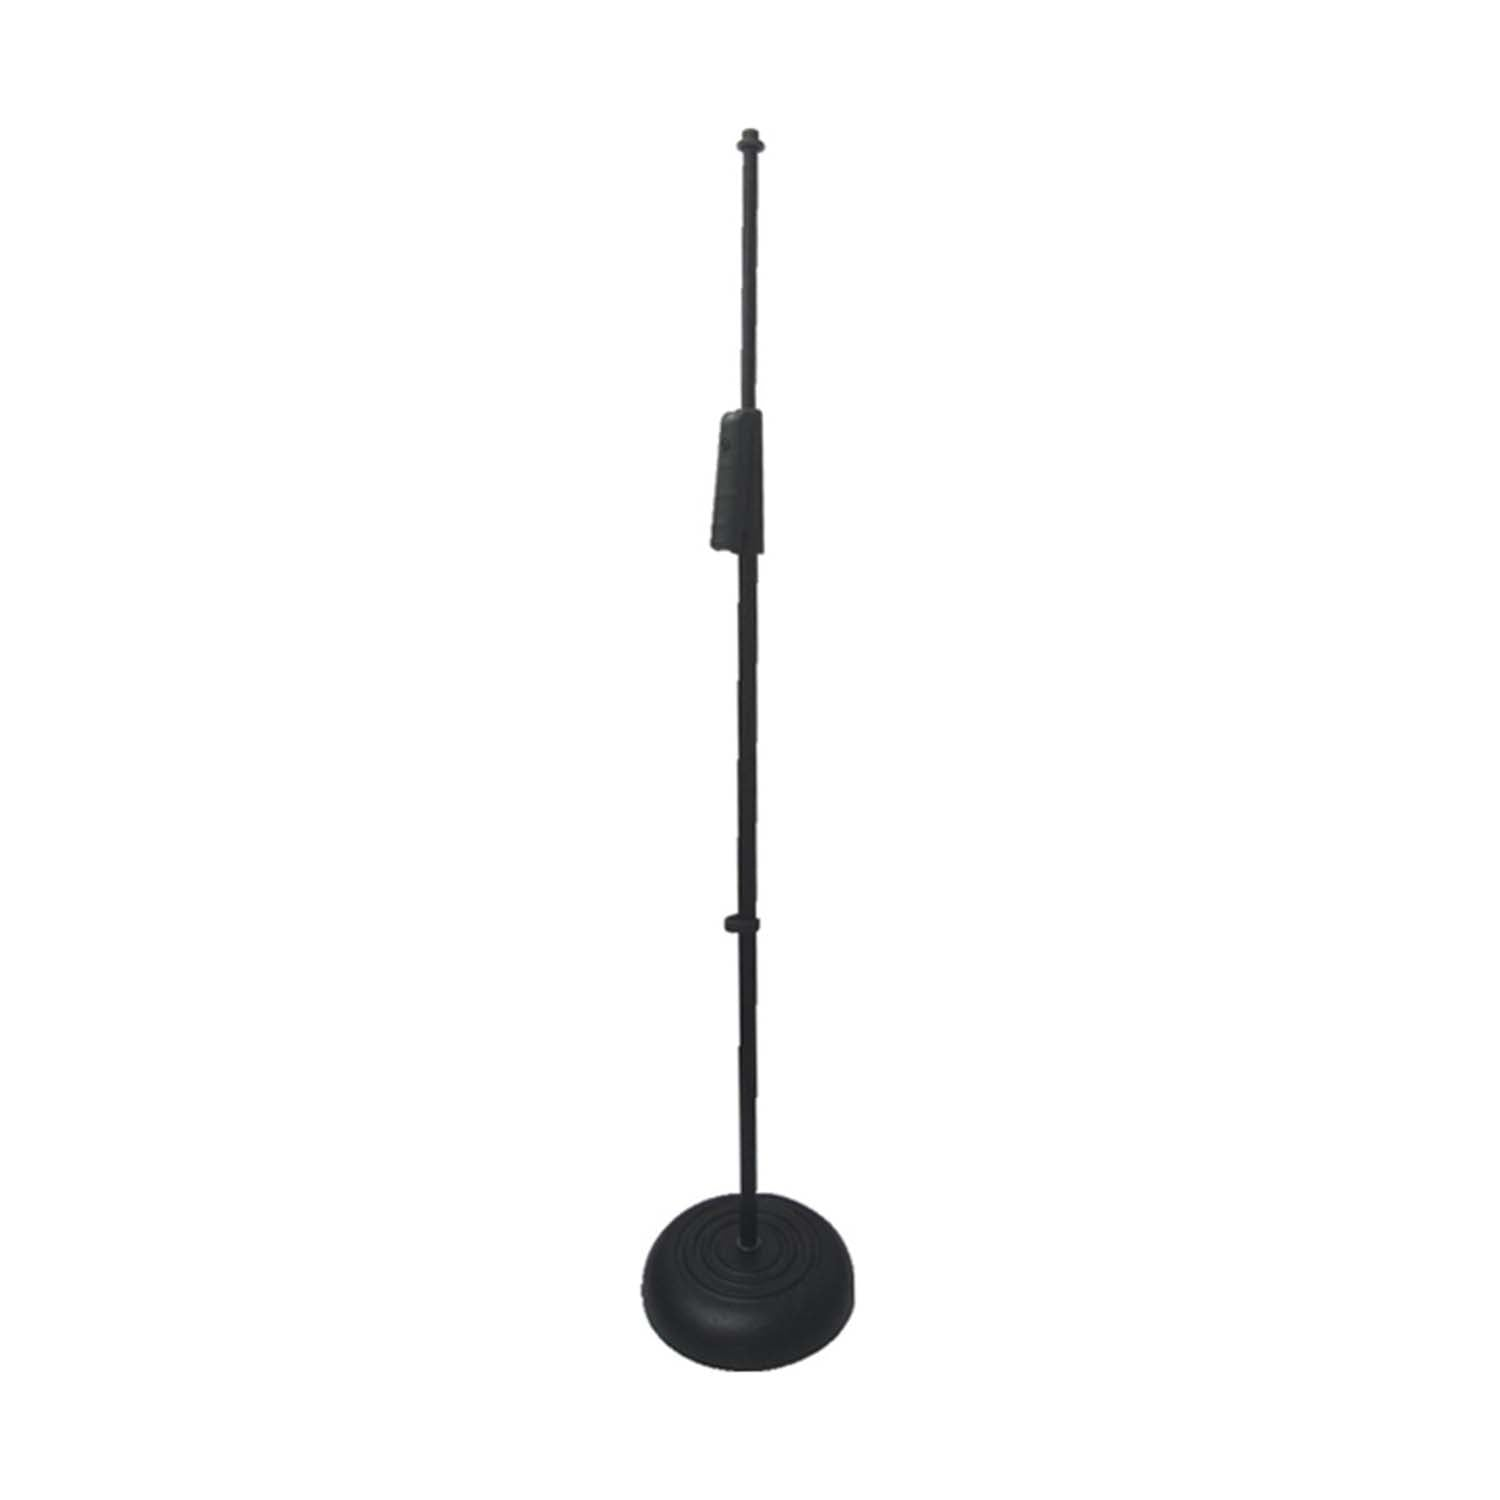 Artist MS069 Straight Mic Stand with Clutch and Round Base